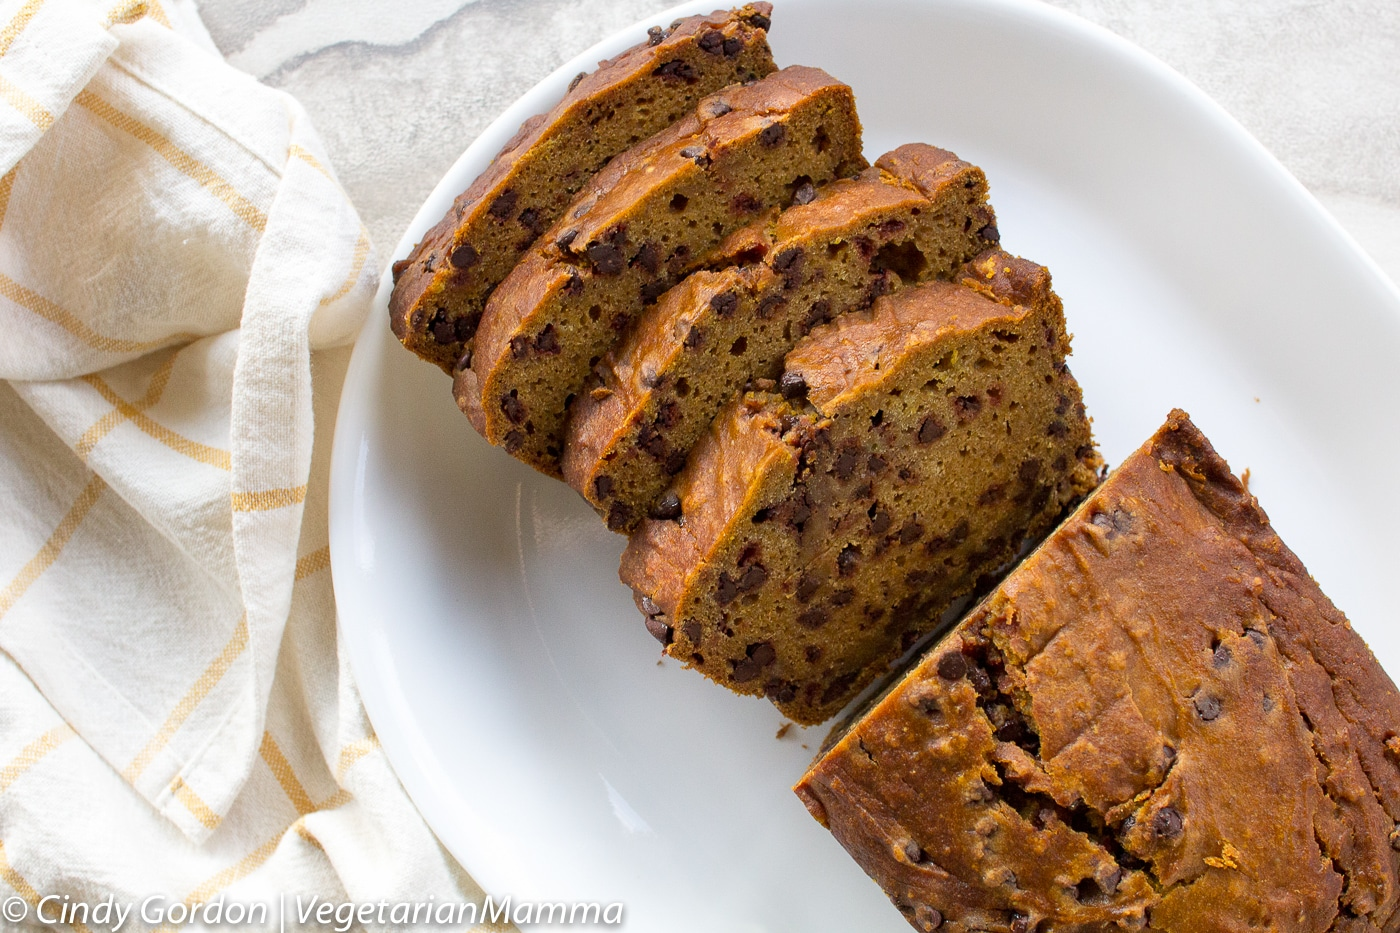 Gluten Free Chocolate Chip Pumpkin Bread is easy to make. Served up in slices.